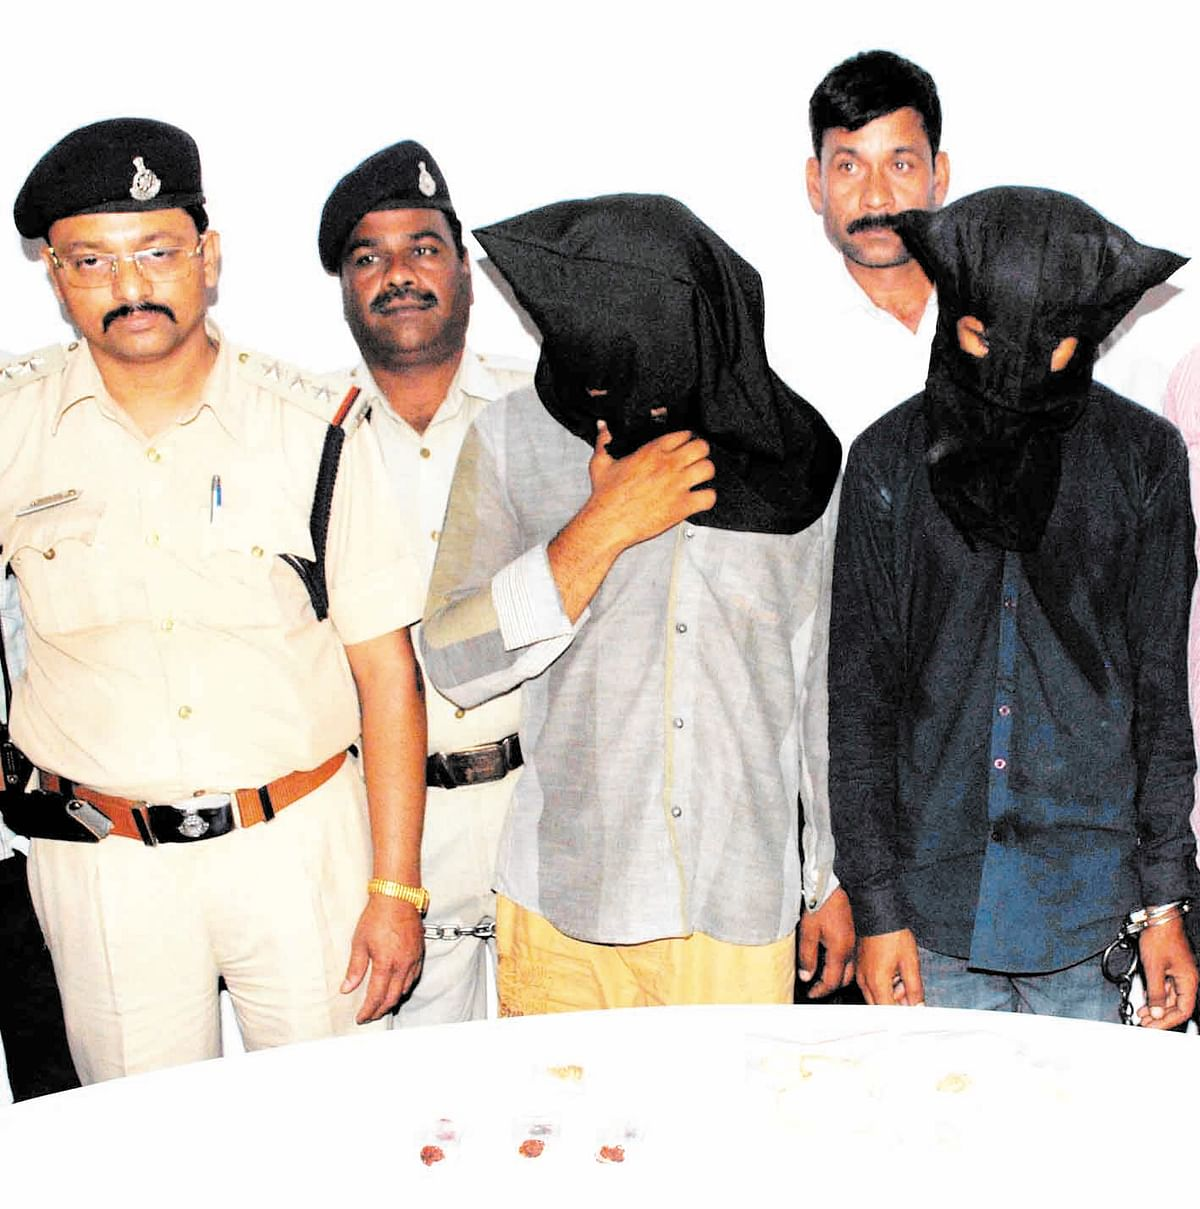 Two chain snatchers caught, 7 chains recovered